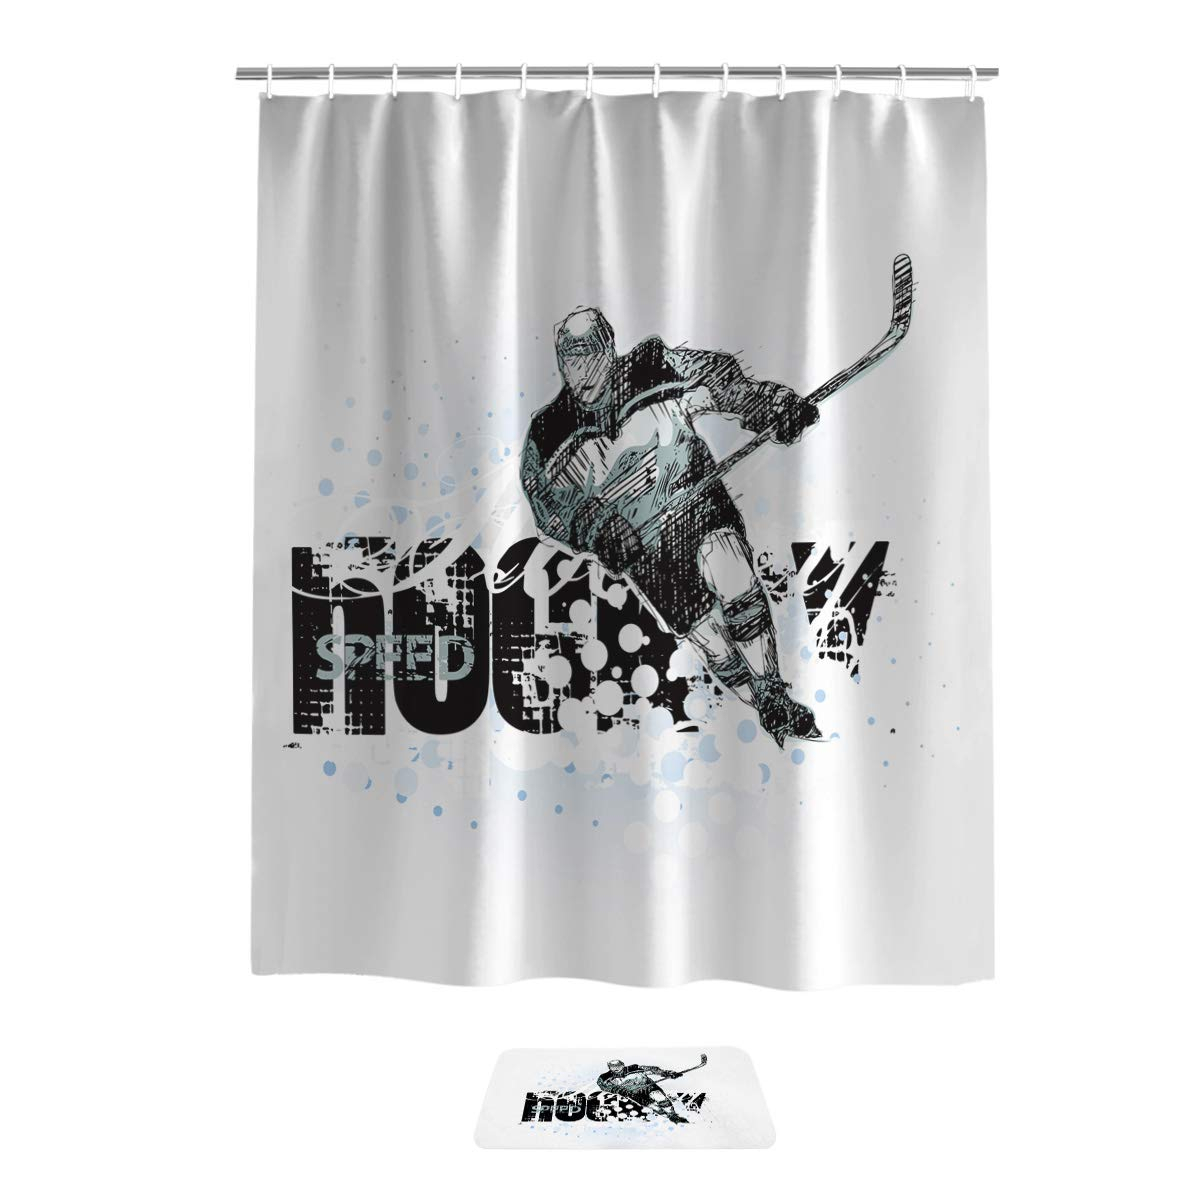 Towel Curtains Decorative Home Fabric Bathrooms Covered Intended For Kitchen Burgundy/white Curtain Sets (View 15 of 20)